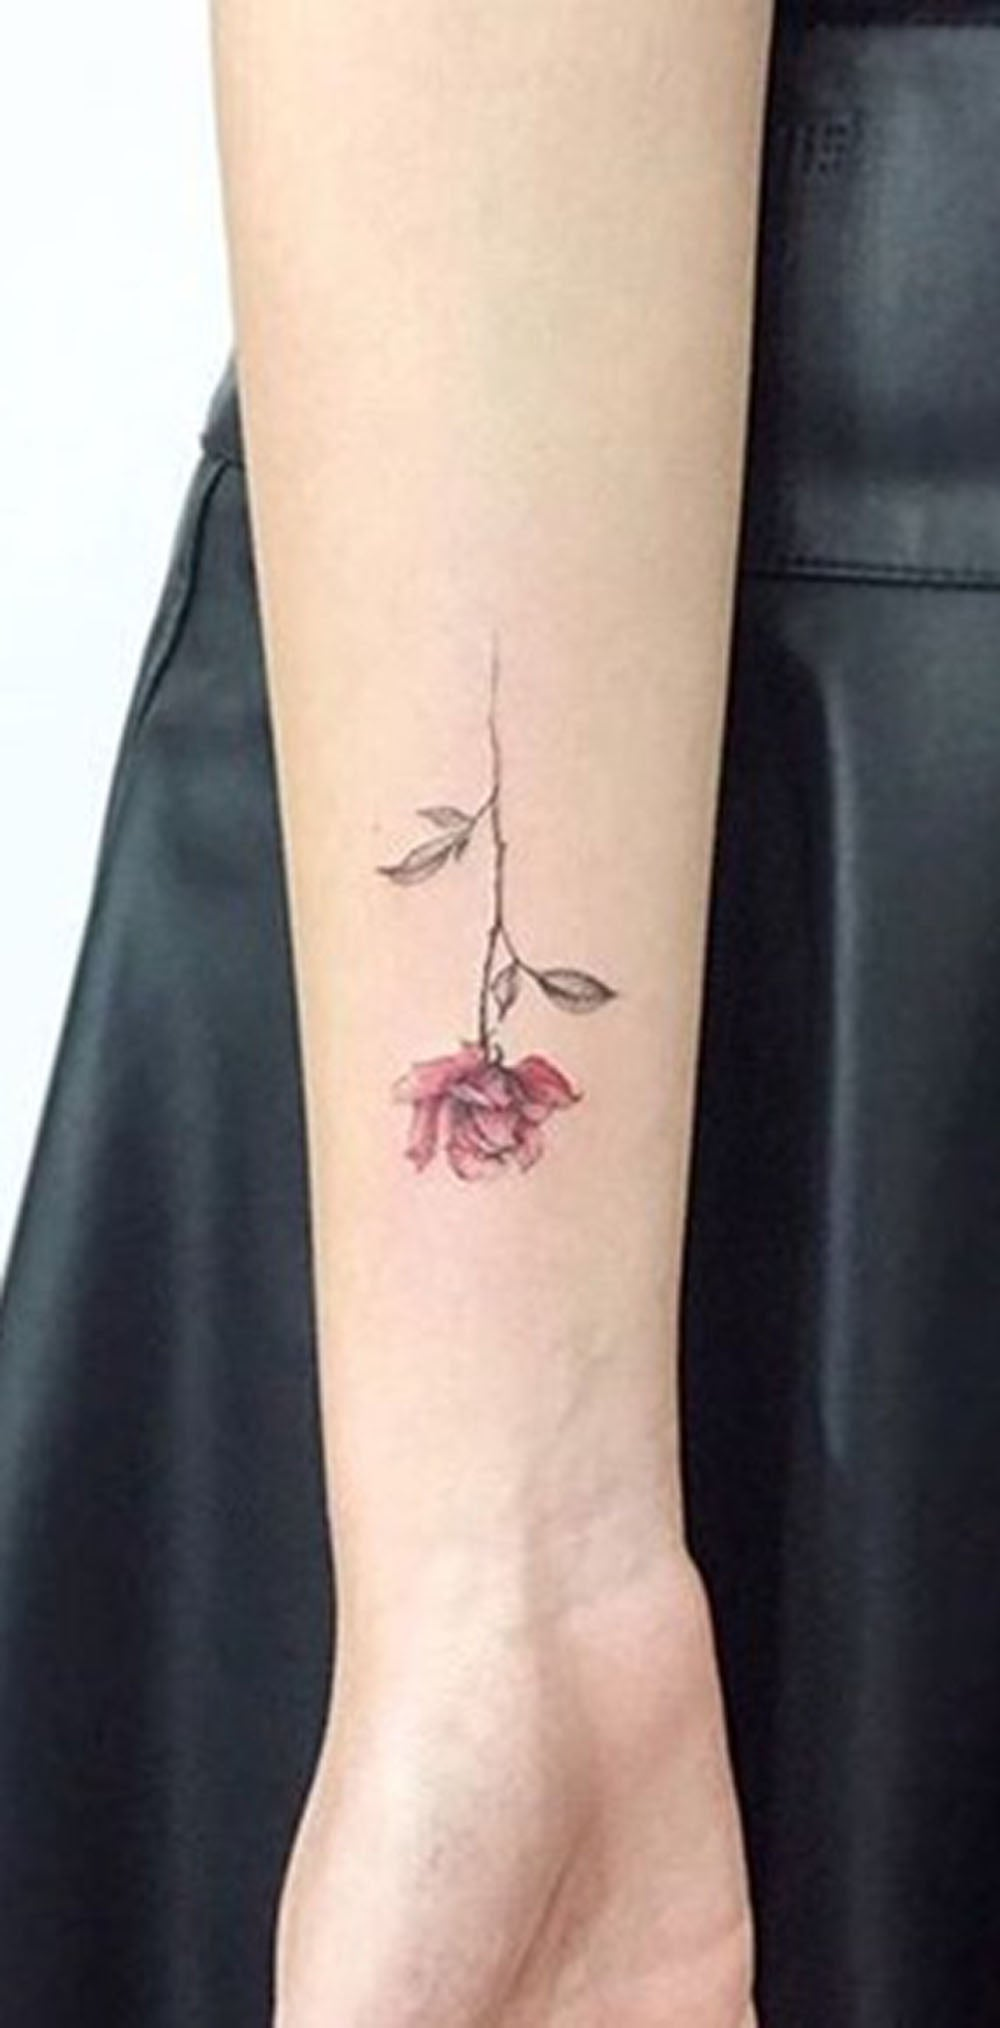 Cute Small Minimal Single Rose Watercolor Wrist Arm Tattoo Ideas for Women -  Lindo pequeño y minimalista rosa acuarela muñeca brazo tatuaje Ideas para mujeres - www.MyBodiArt.com